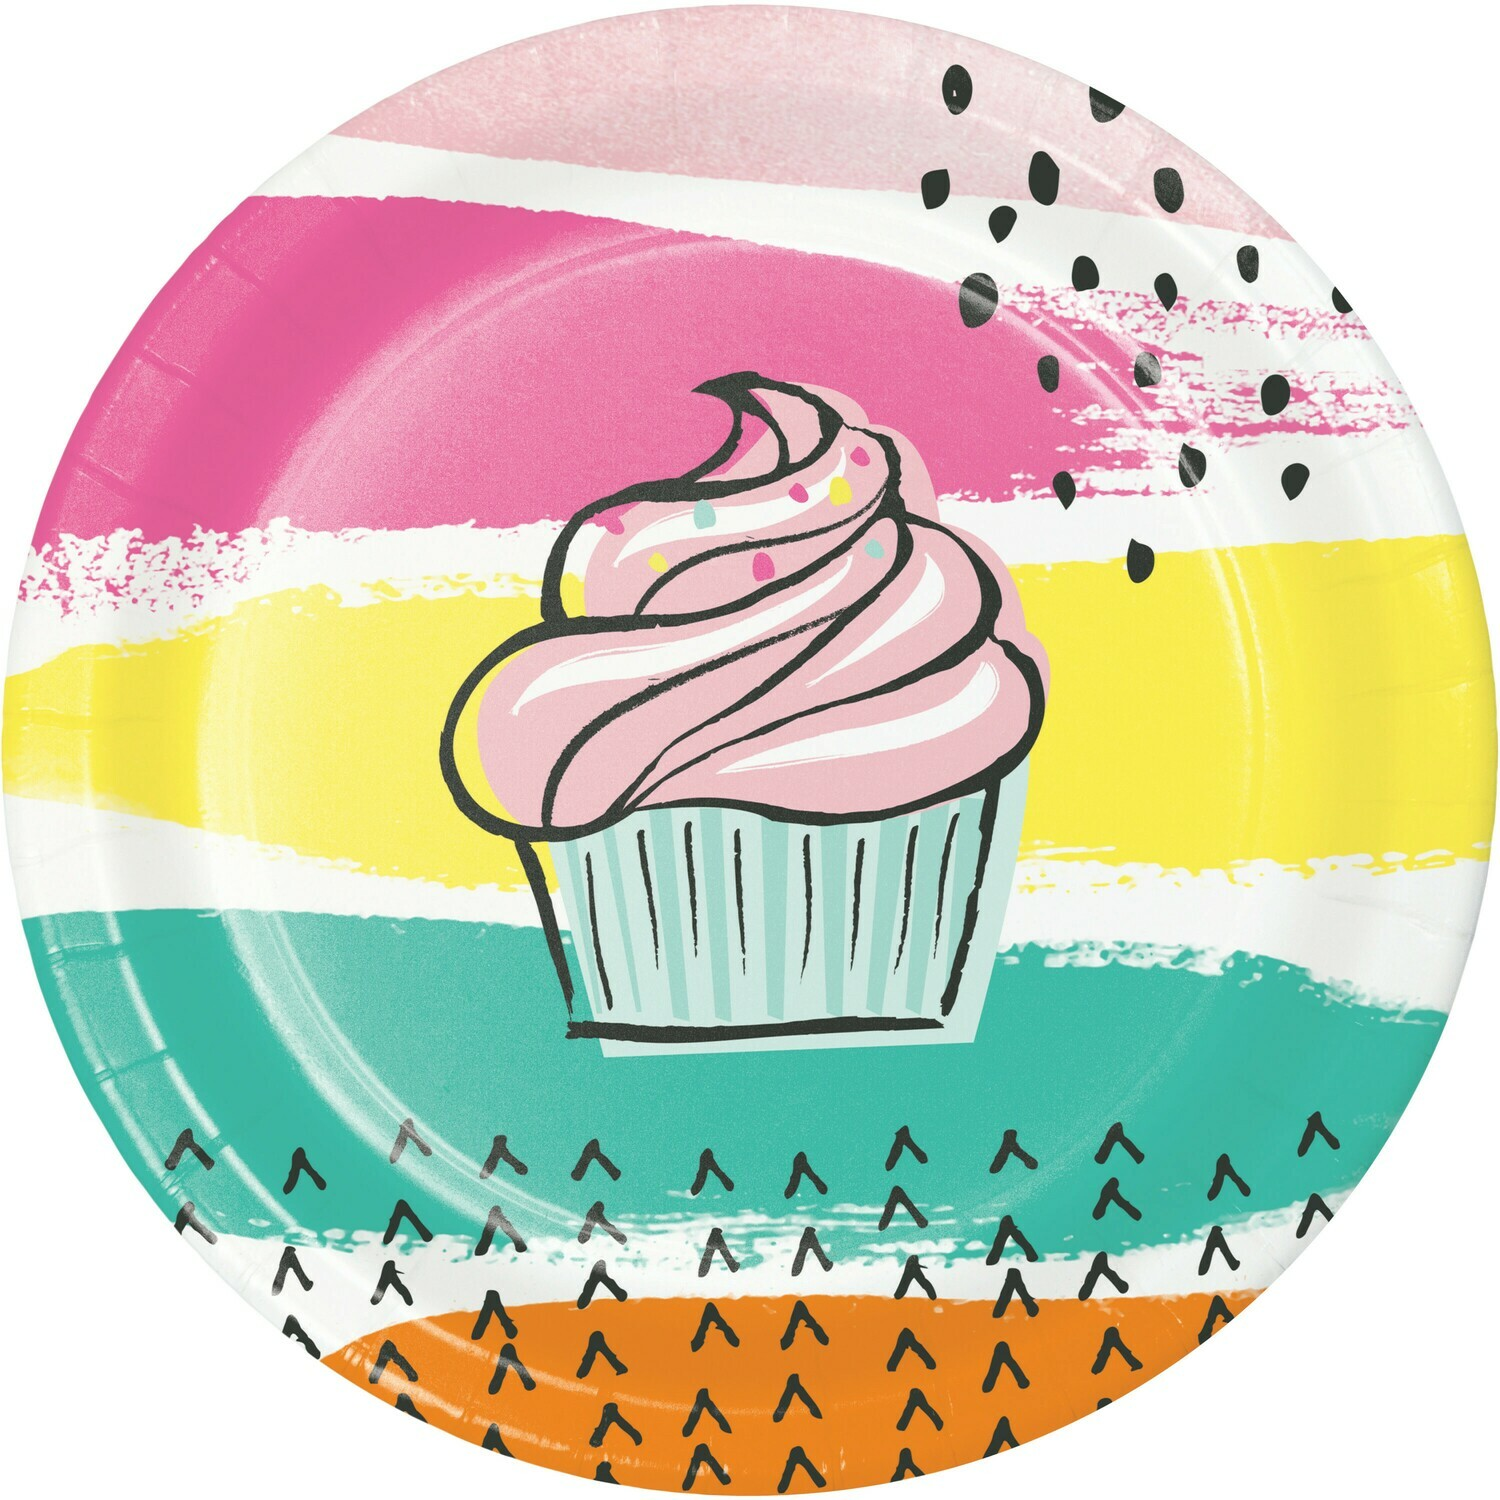 Lunch Paper Plate: Chic Cupcake